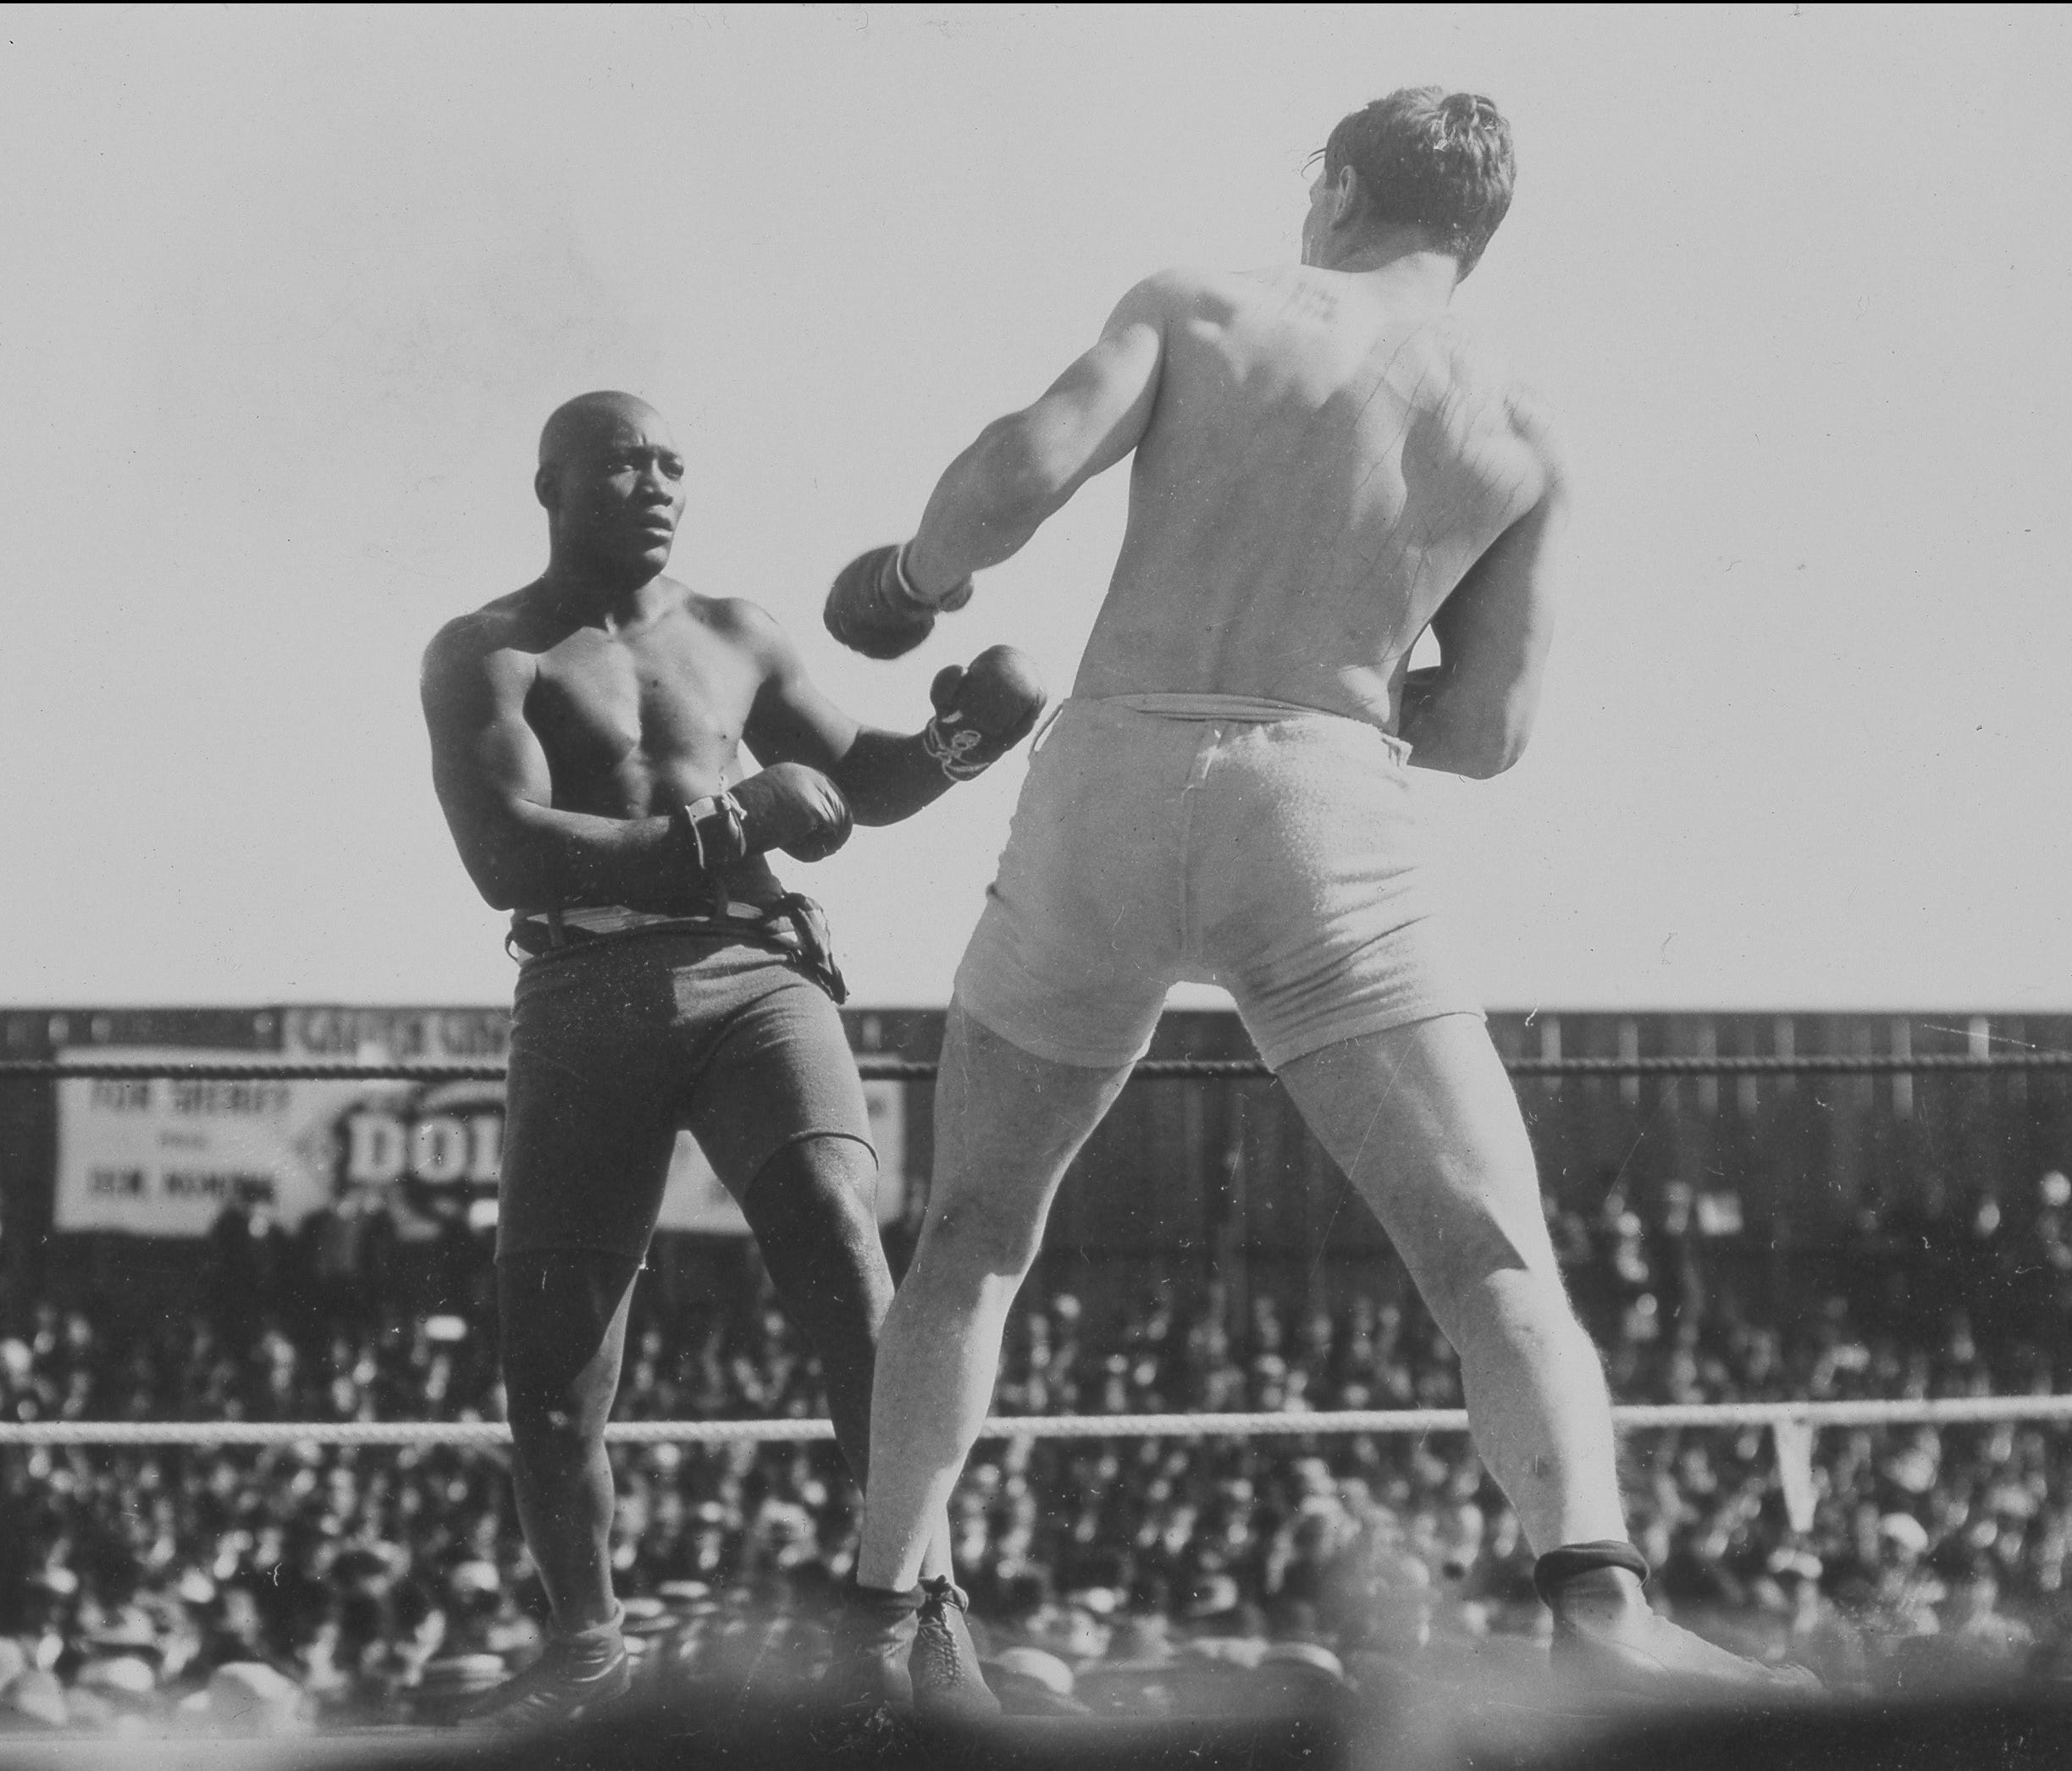 World heavyweight champion Jack Johnson battles with challenger Al Kaufmann — the latest in a string of